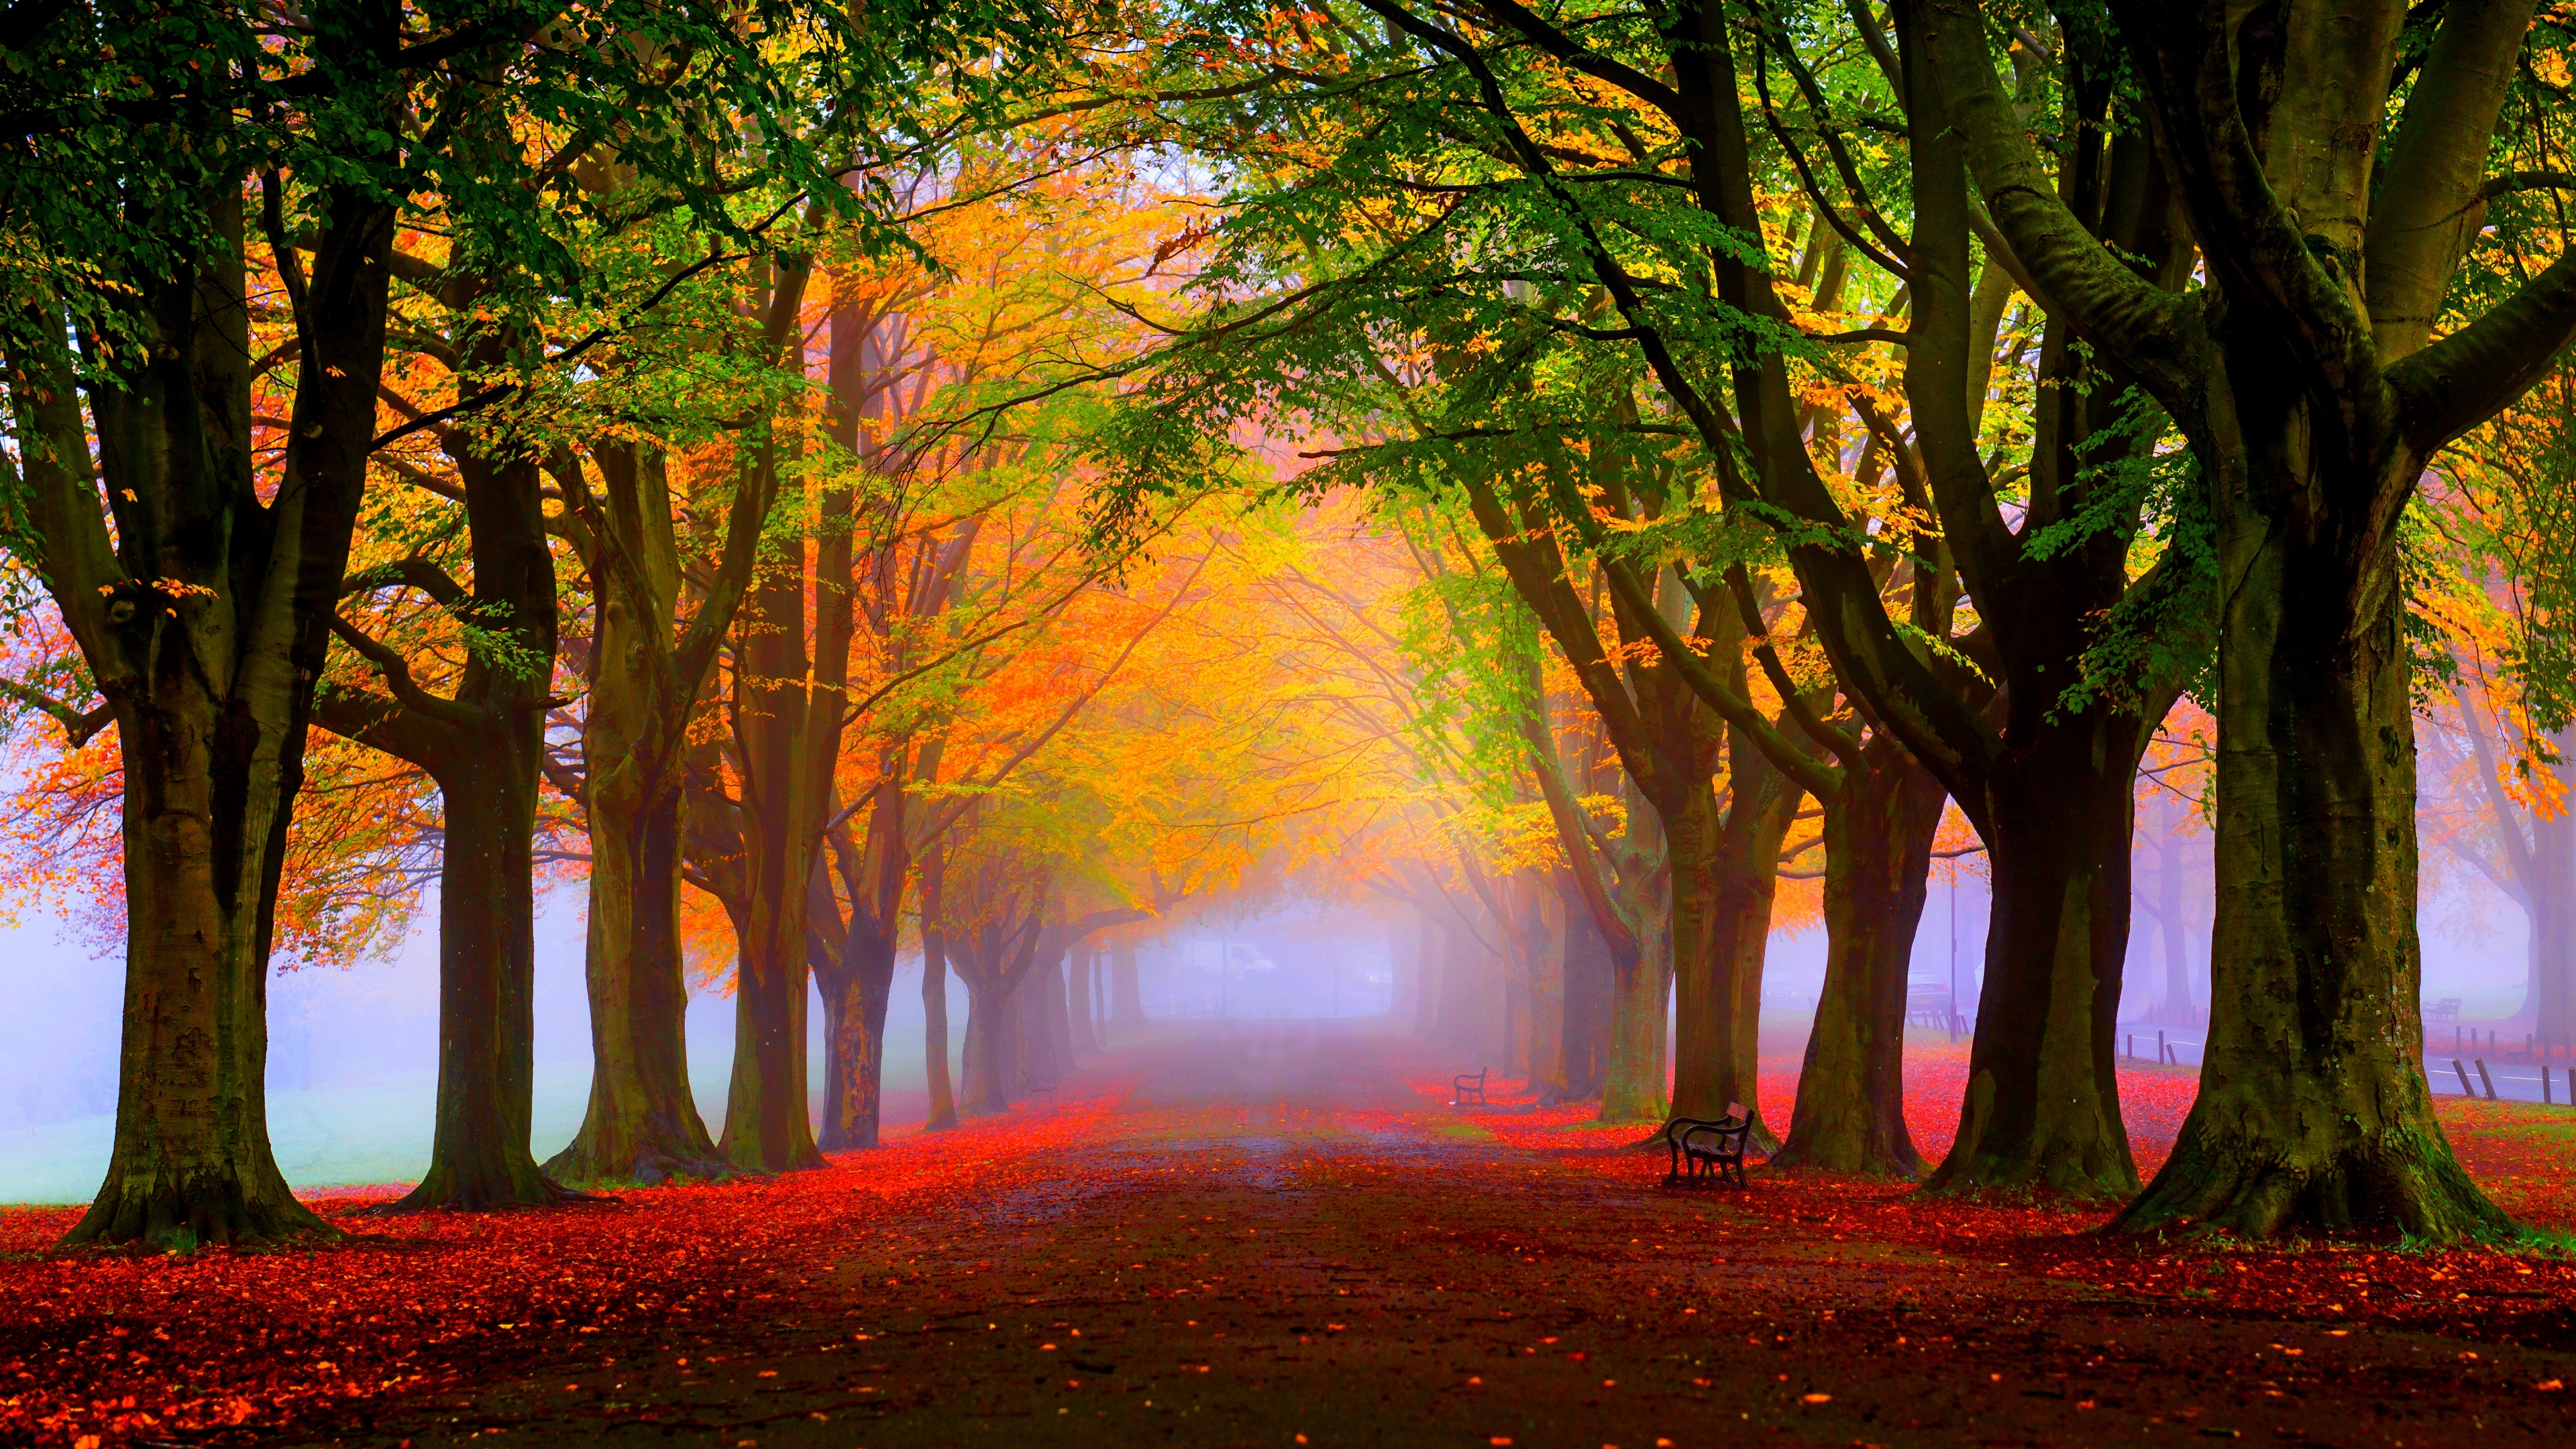 Mercedes New Cars Hd Wallpapers Red Leaves And Fog In The Park Autumn Landscape